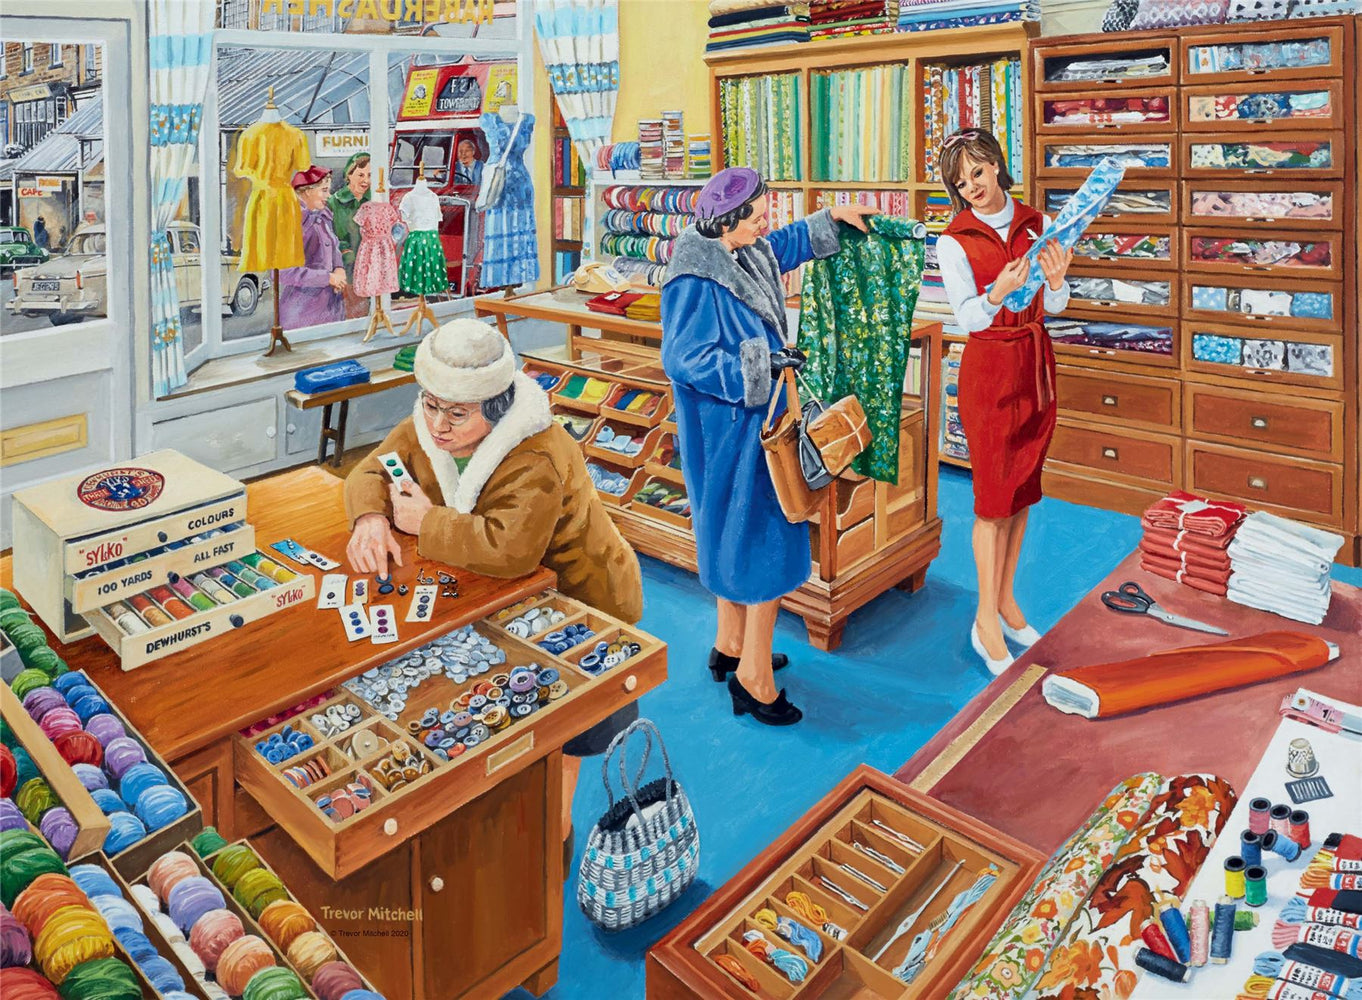 Ravensburger Happy Days at Work, The Haberdasher, 500 Piece Jigsaw Puzzle